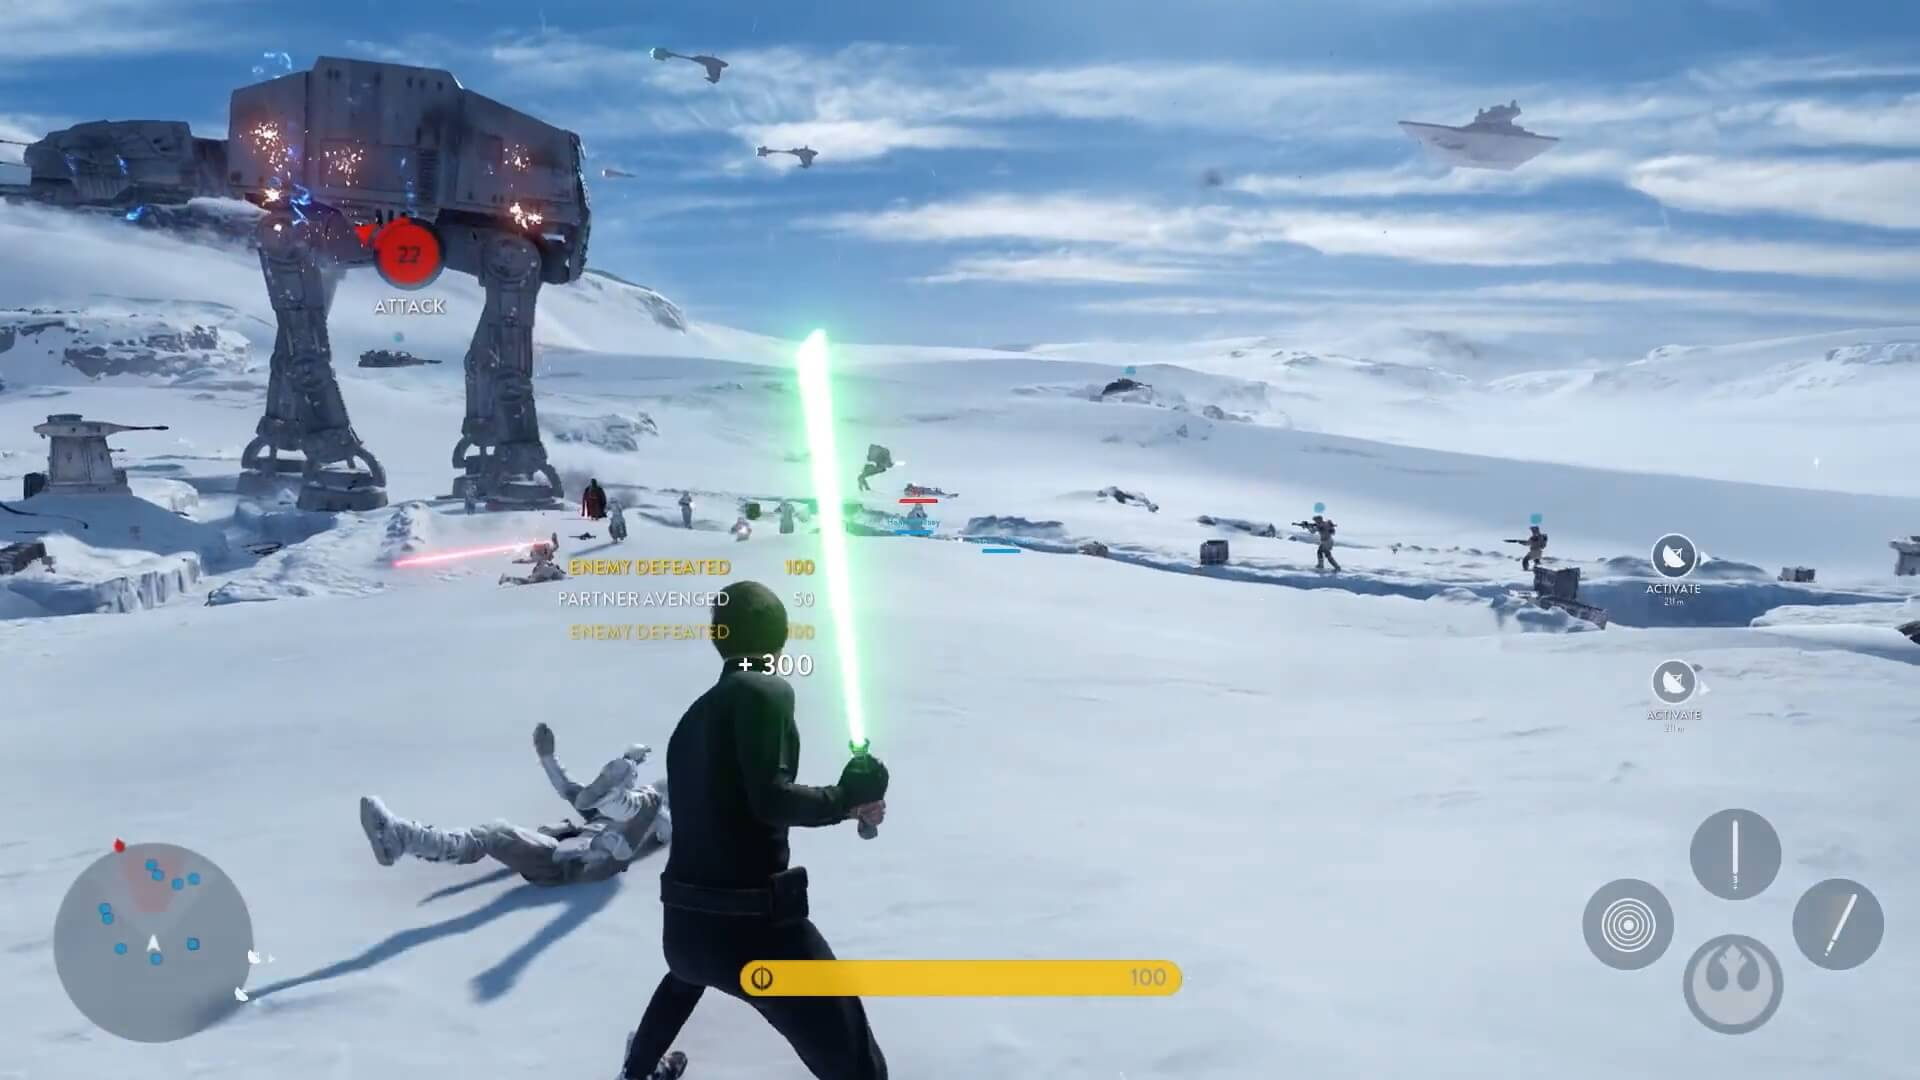 E3-2015-Darth-Vader-and-Luke-duel-in-Star-Wars-Battlefront-Multiplayer-Gameplay-footage (1)